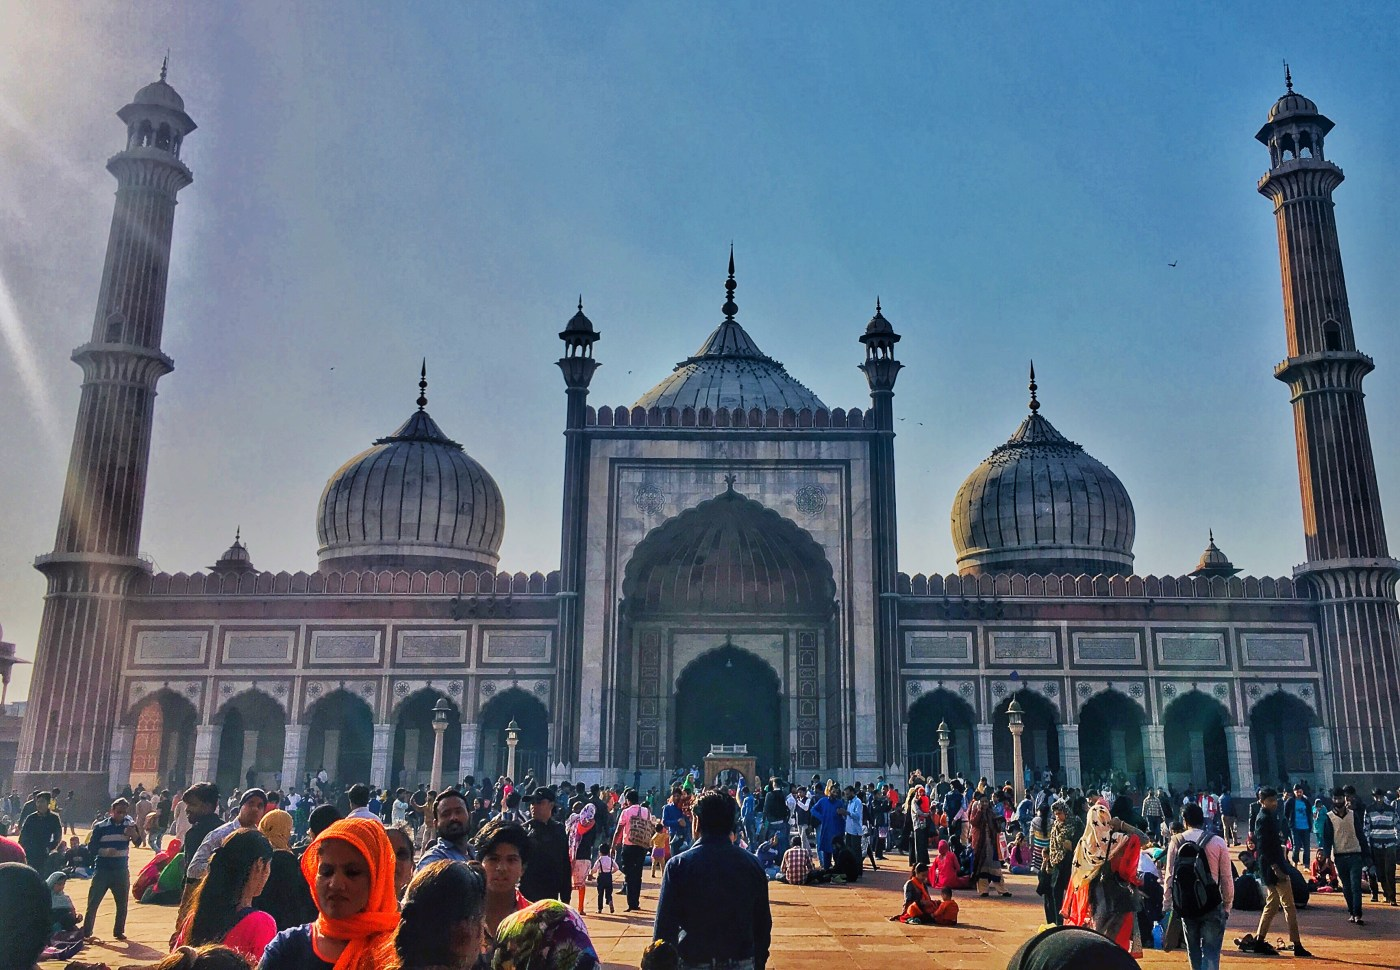 The Prayer Hall building of Jama Masjid    The largest mosque in India